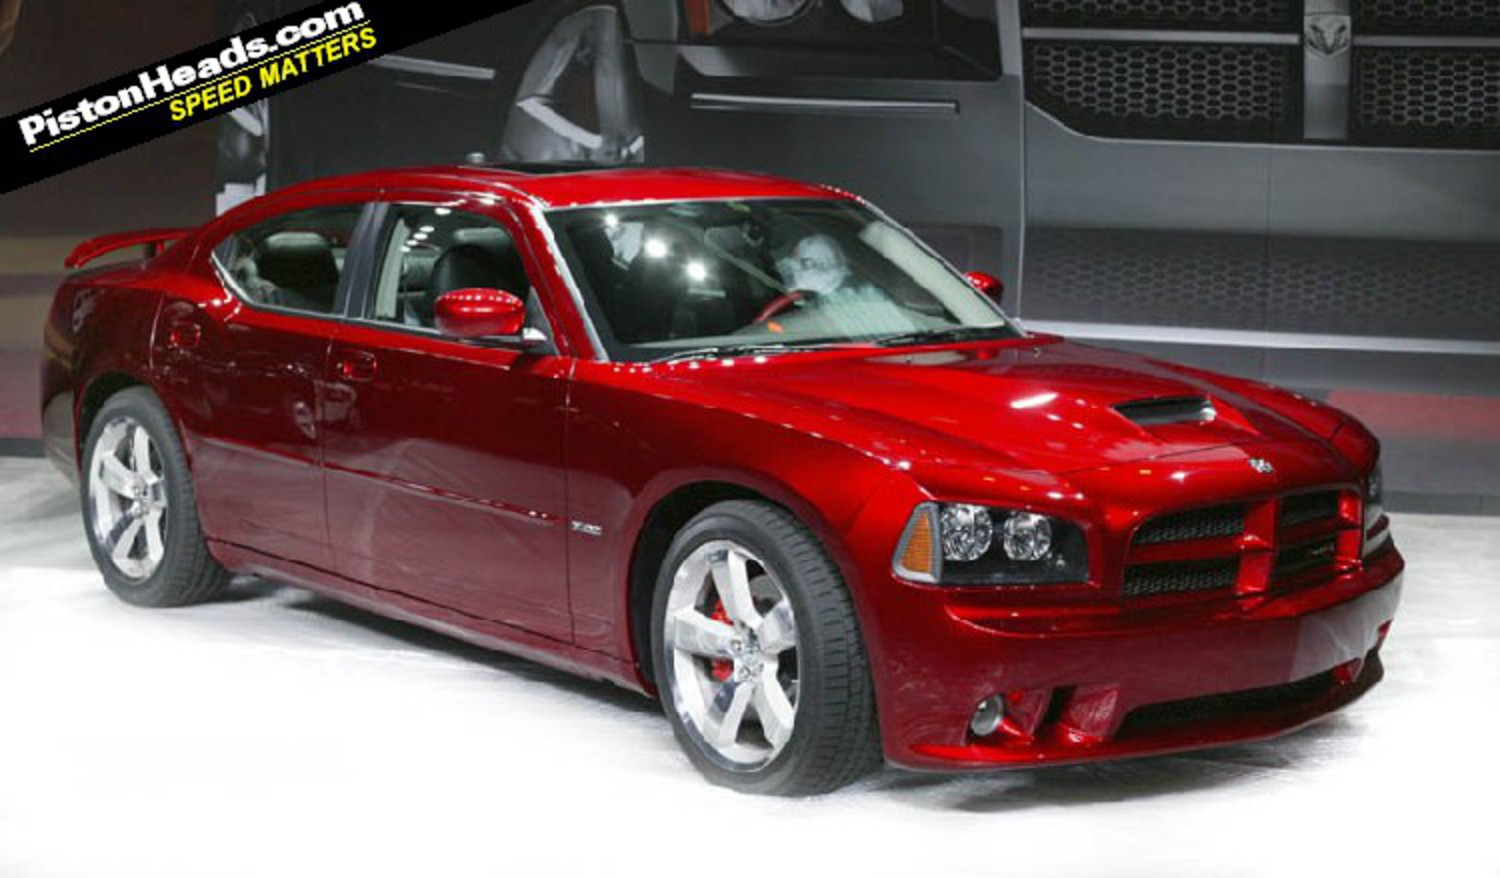 The Dodge Charger was reintroduced for 2006 with a limited production Dodge